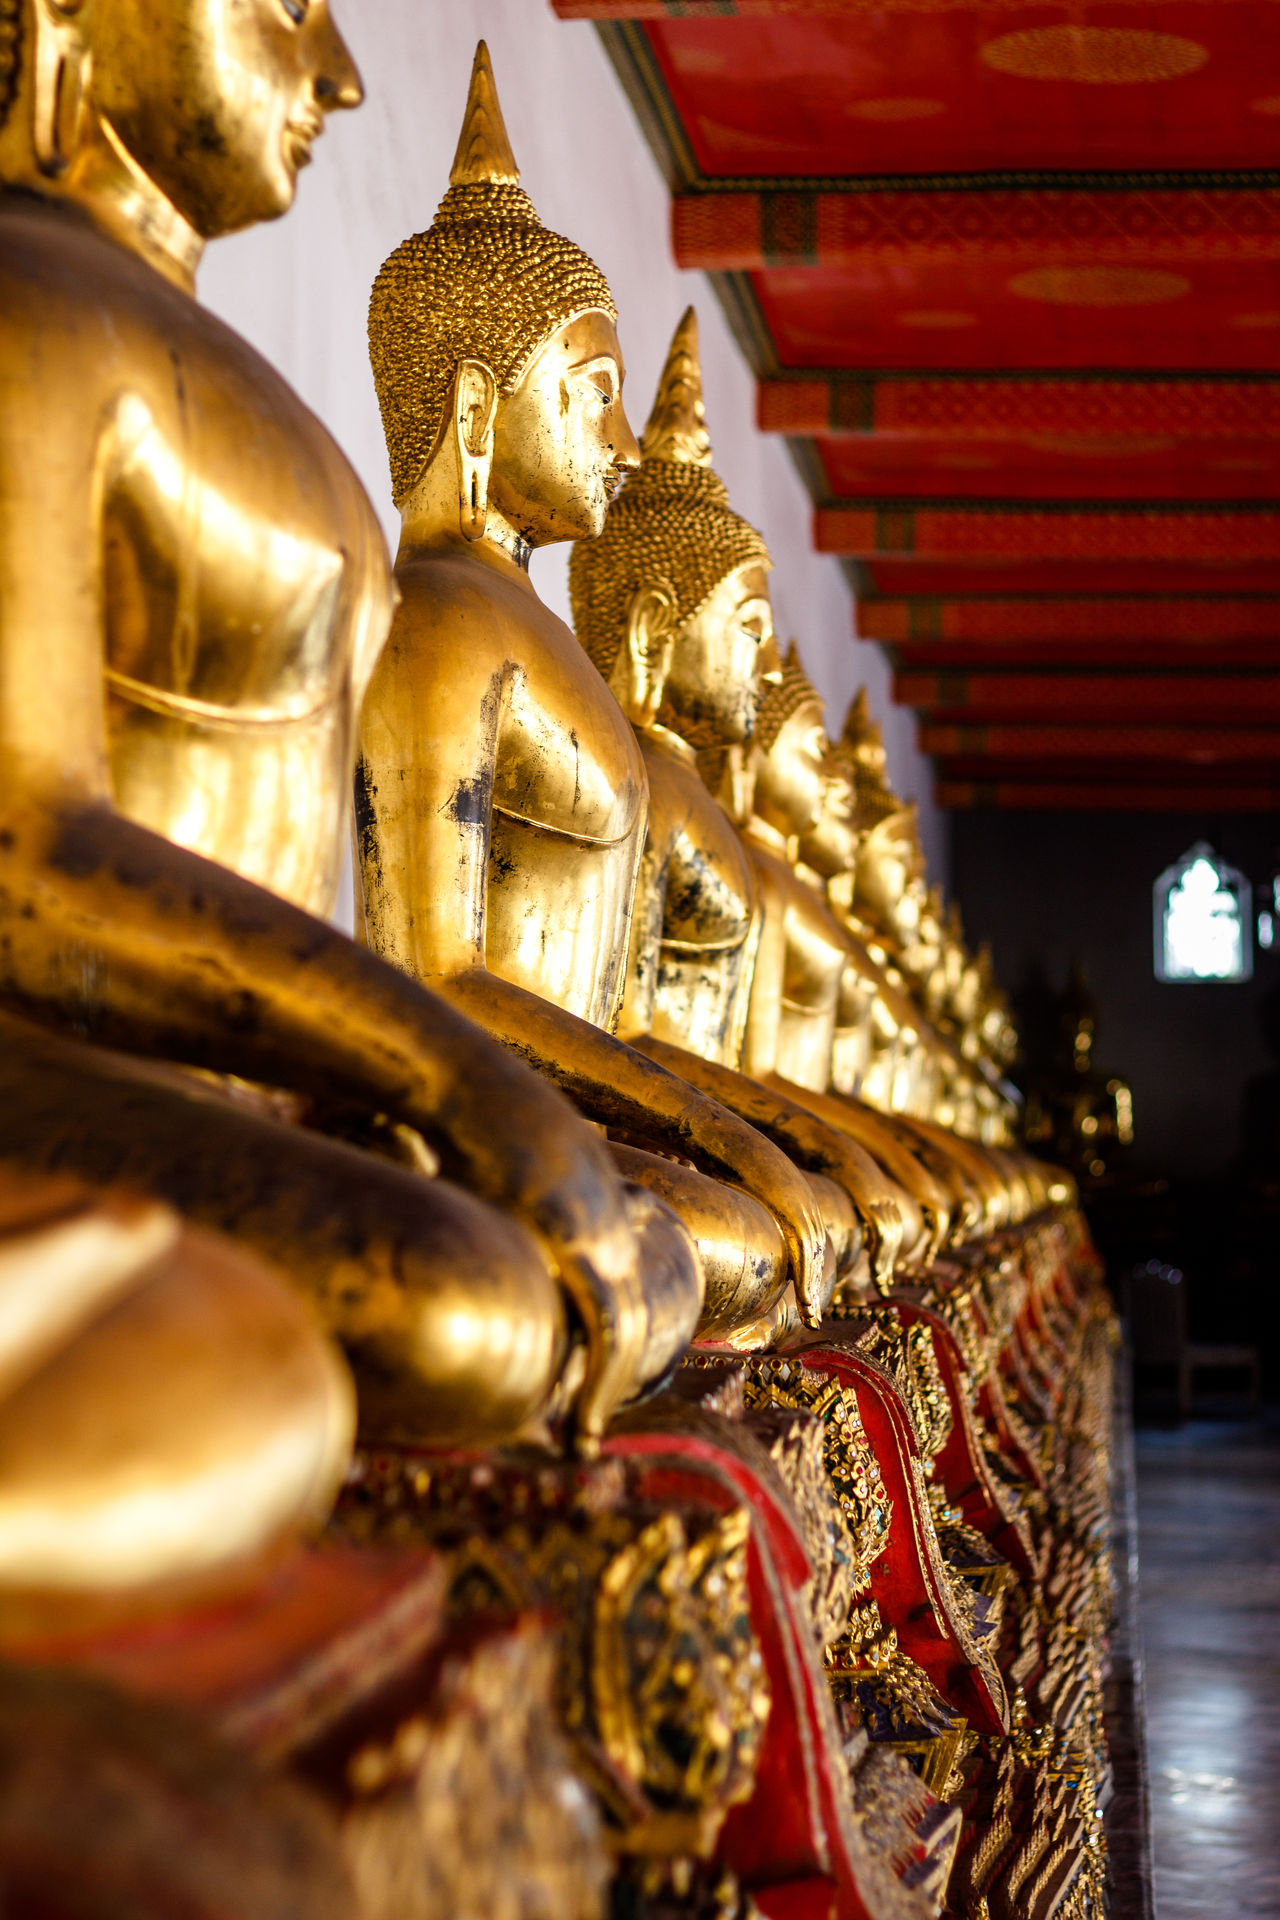 Architecture Bangkok Buddha Cultures Day EyeEm Best Shots EyeEm Thailand Gold Gold Colored No People Place Of Worship Religion Spirituality Statue Temple - Building Thailand Travel Destinations Wat Pho